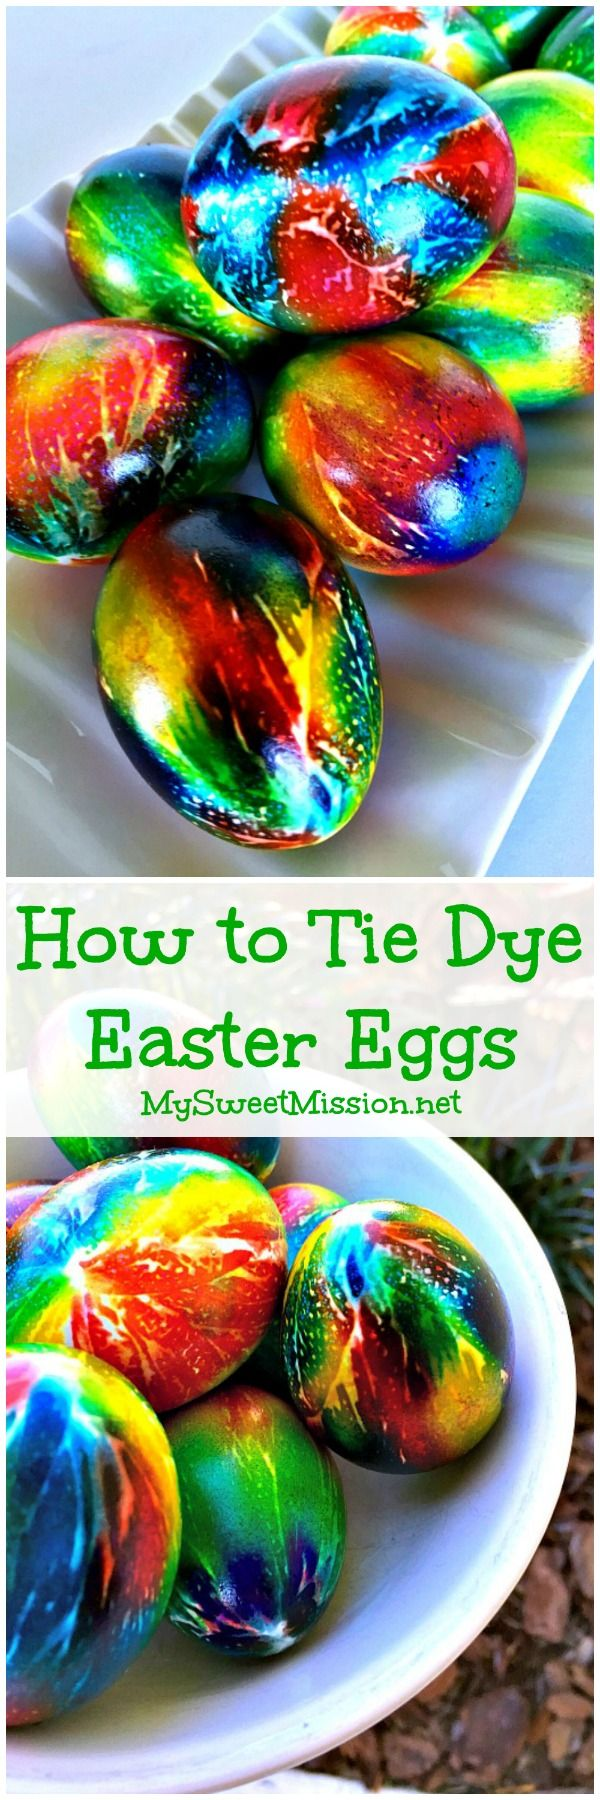 Say good-bye to dull, boring, washed-out Easter eggs, because this awesome technique on How to Tie Dye Easter Eggs will give your eggs intense colors with a high gloss sheen! | My Sweet Mission